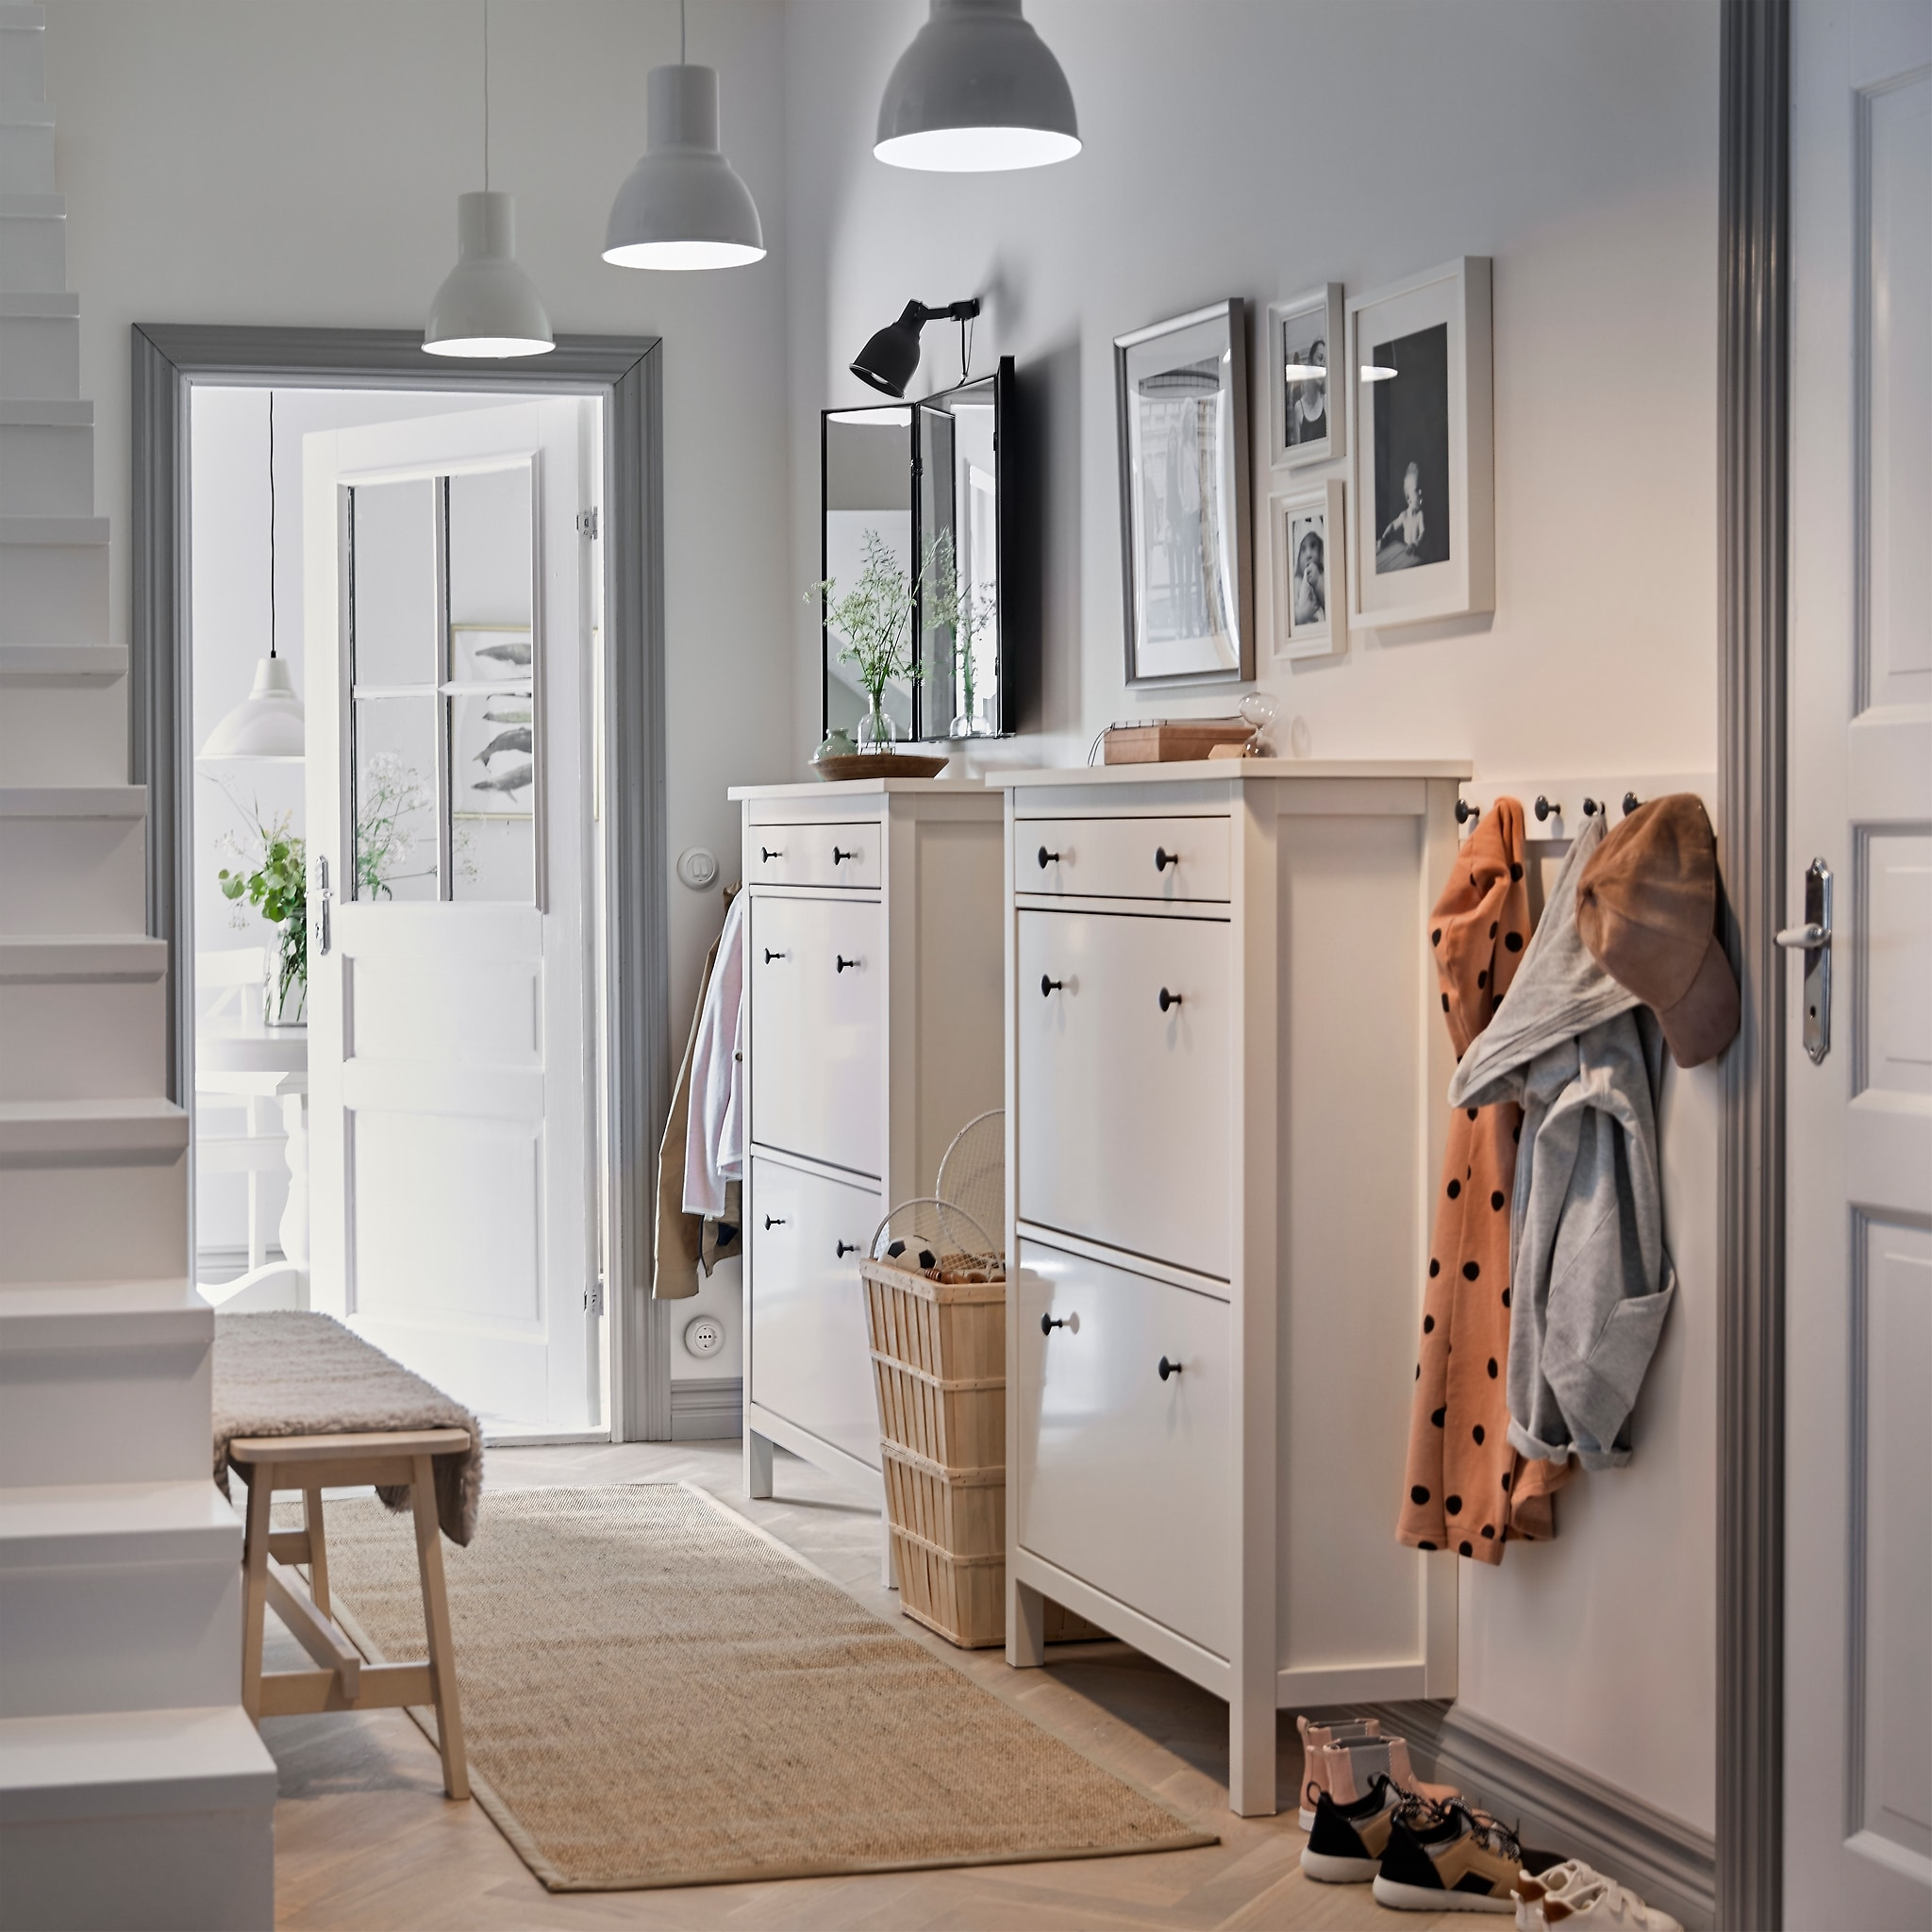 Tips to Improve Your Hallway Space with New Furniture